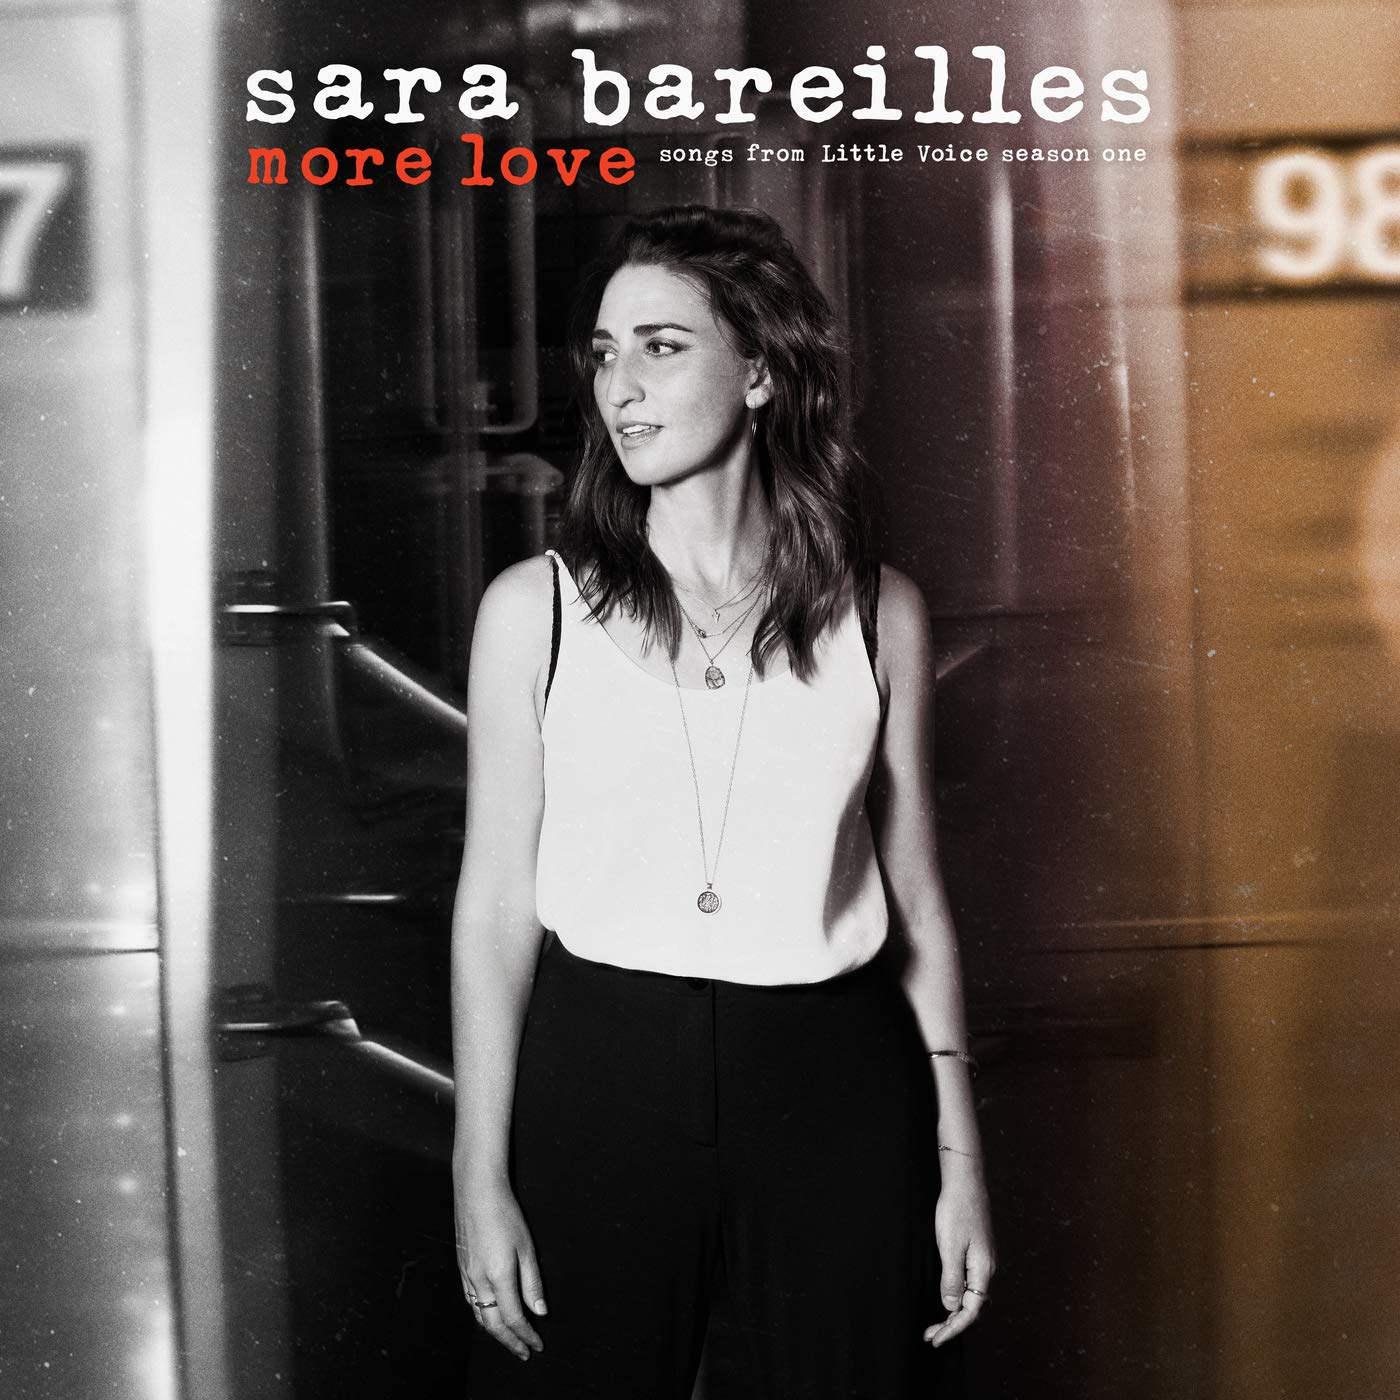 Sara Bareilles - More Love: Songs From Little Voice Season One (2020) [FLAC] Download